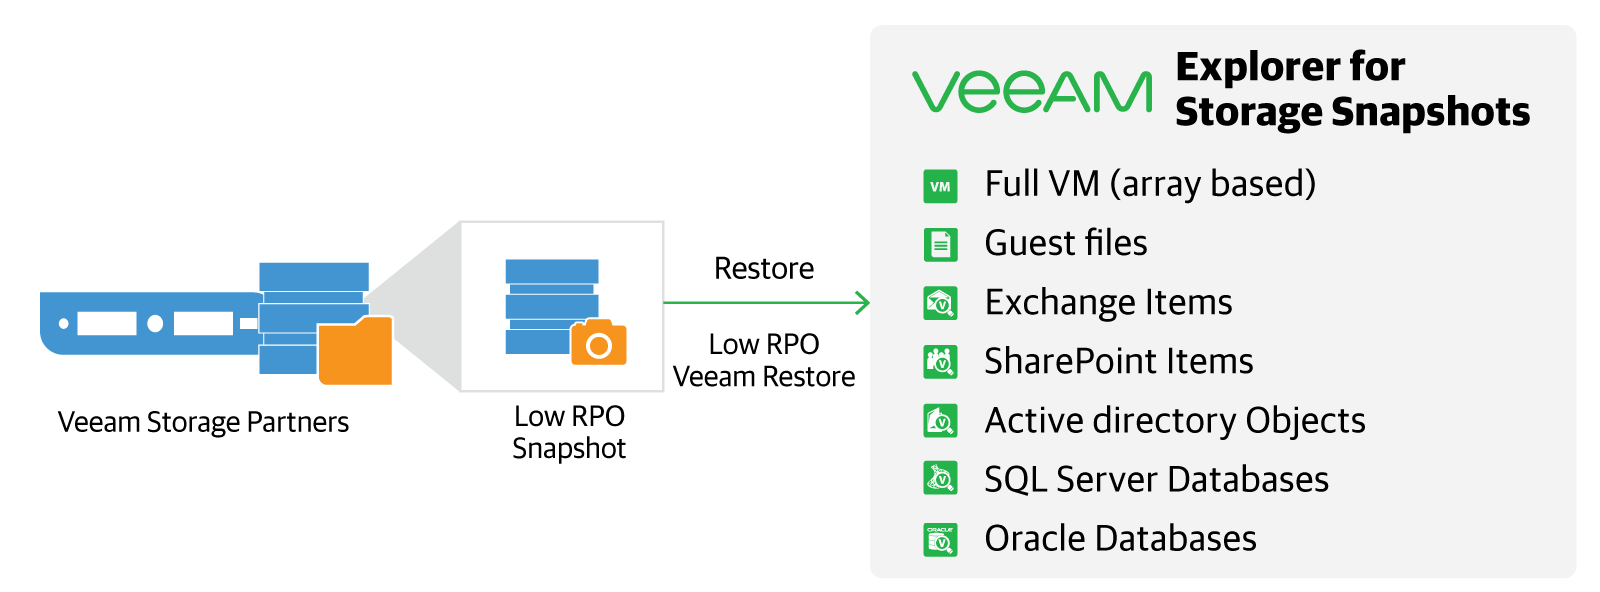 veeam_explorer_for_storage_snapshots.png